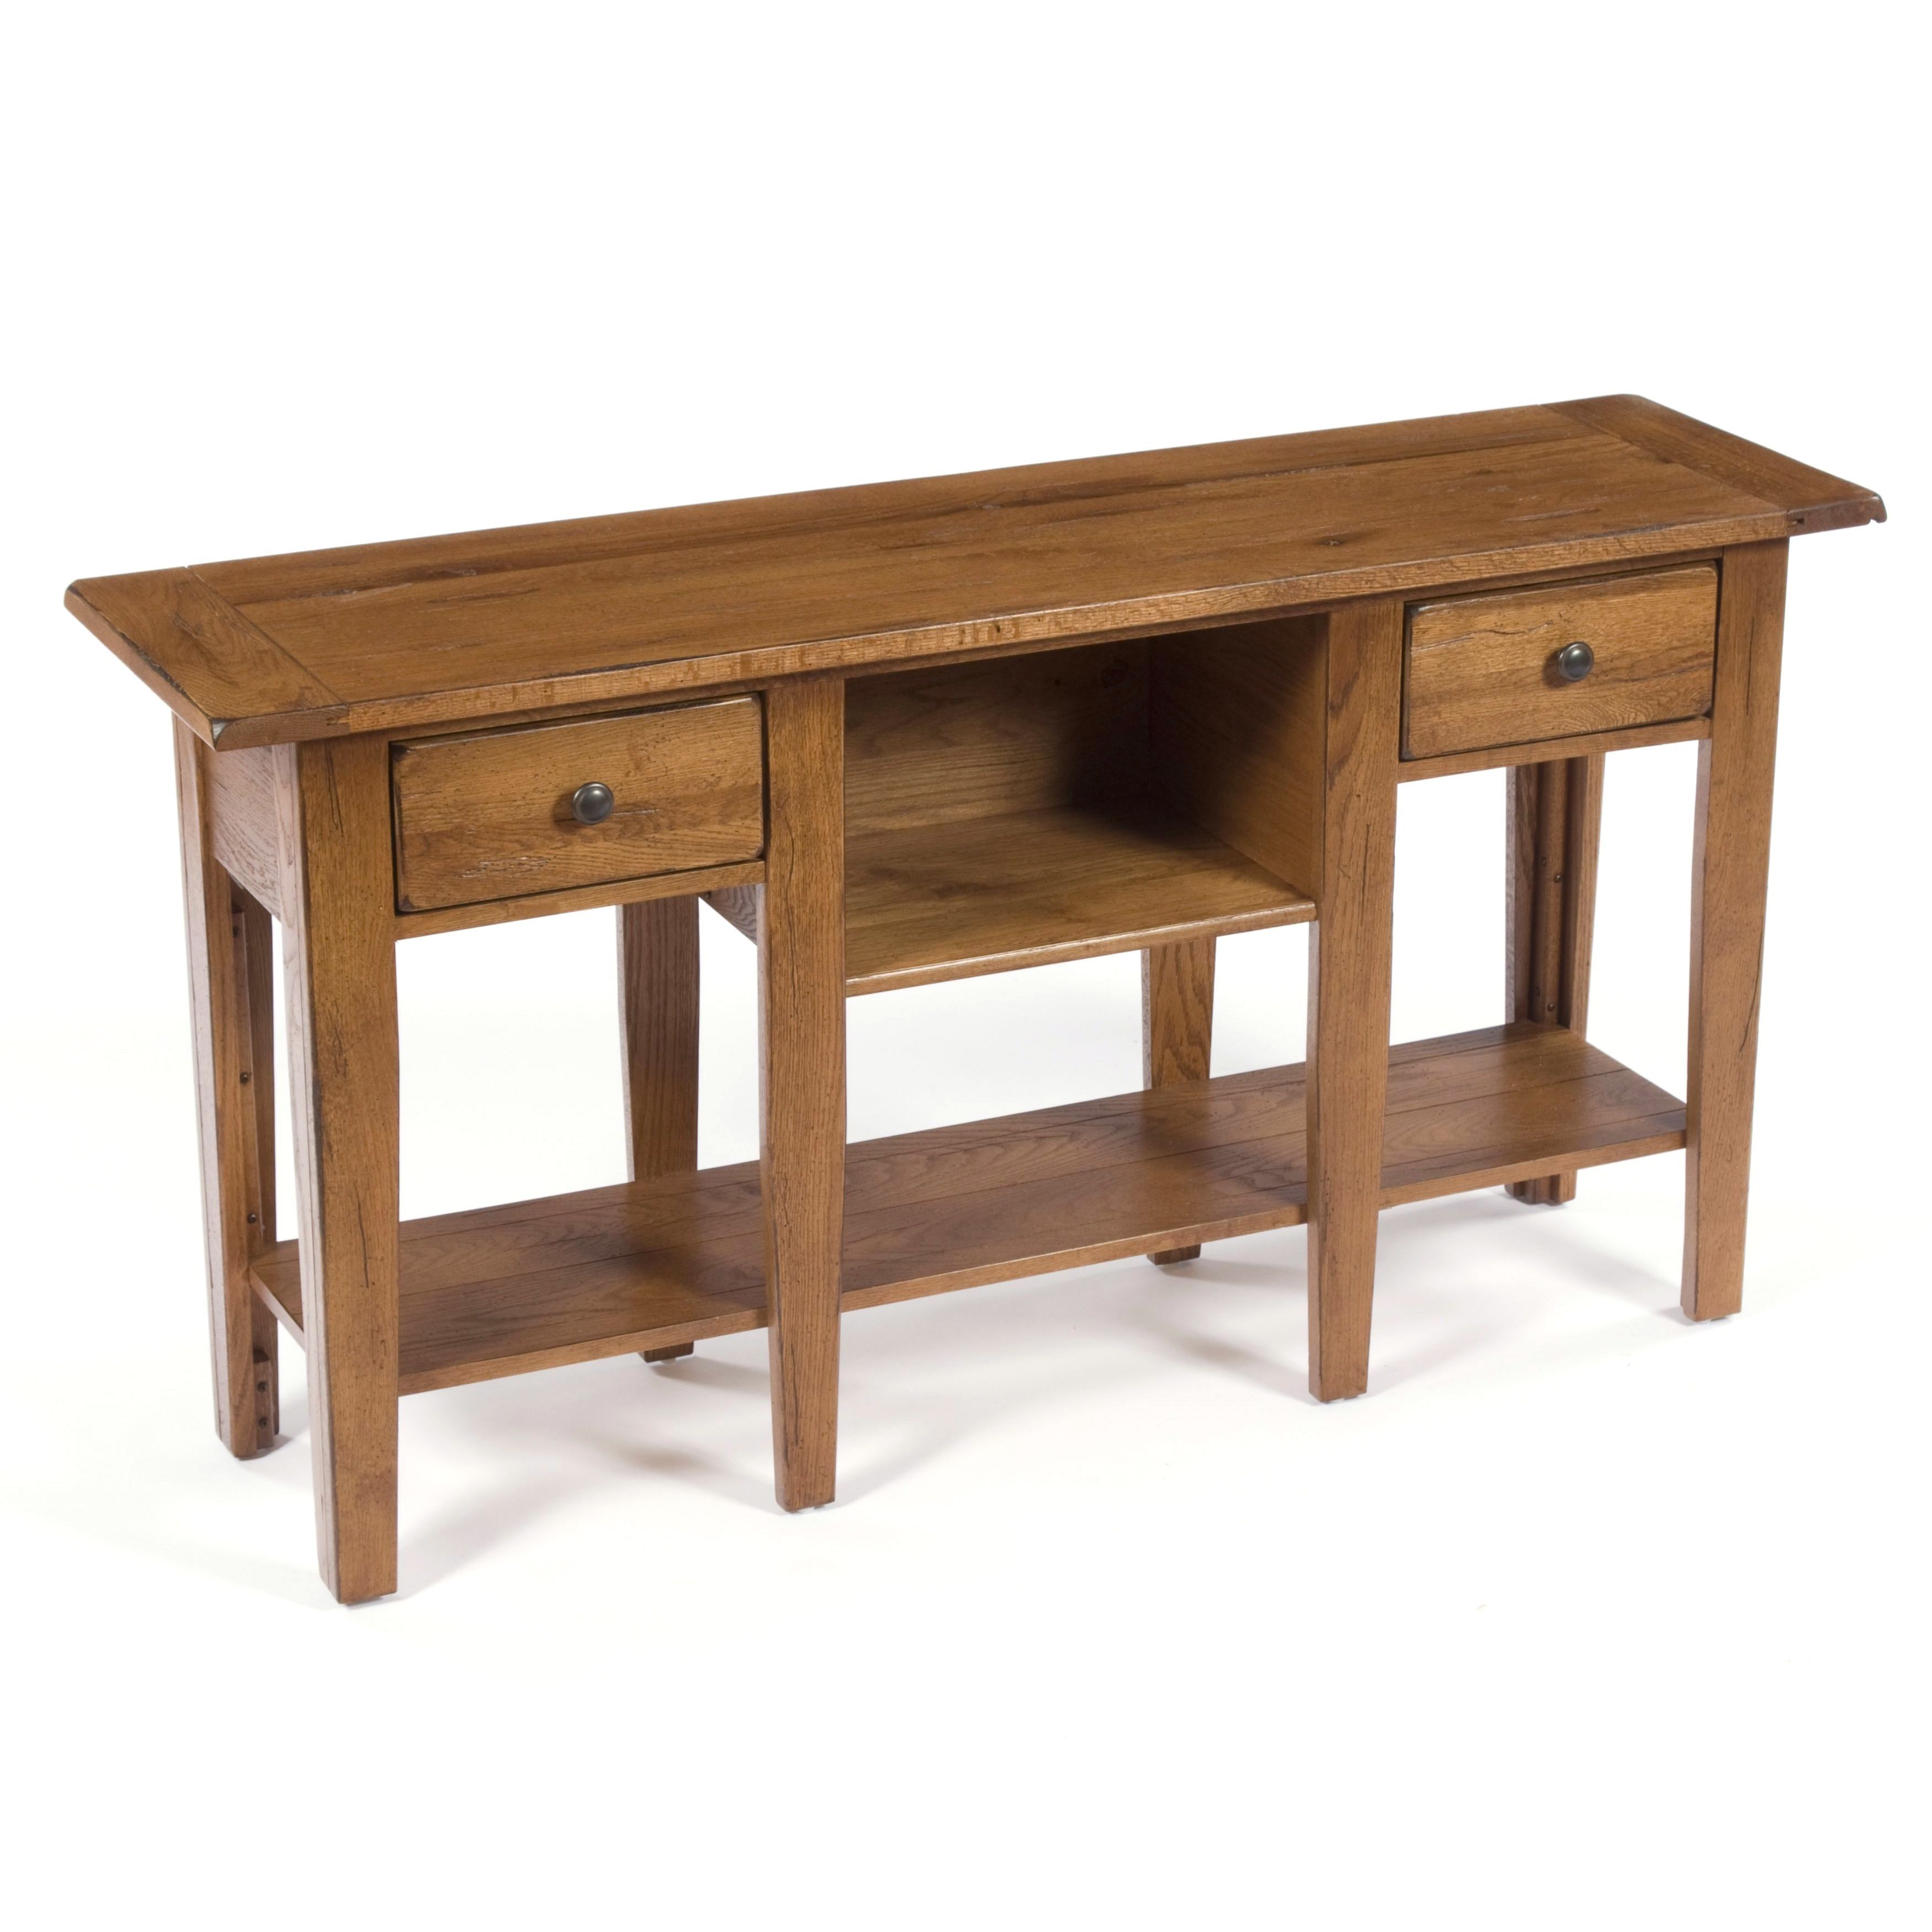 Strange Broyhill Attic Heirlooms Finish Console Table Products Home Interior And Landscaping Pimpapssignezvosmurscom